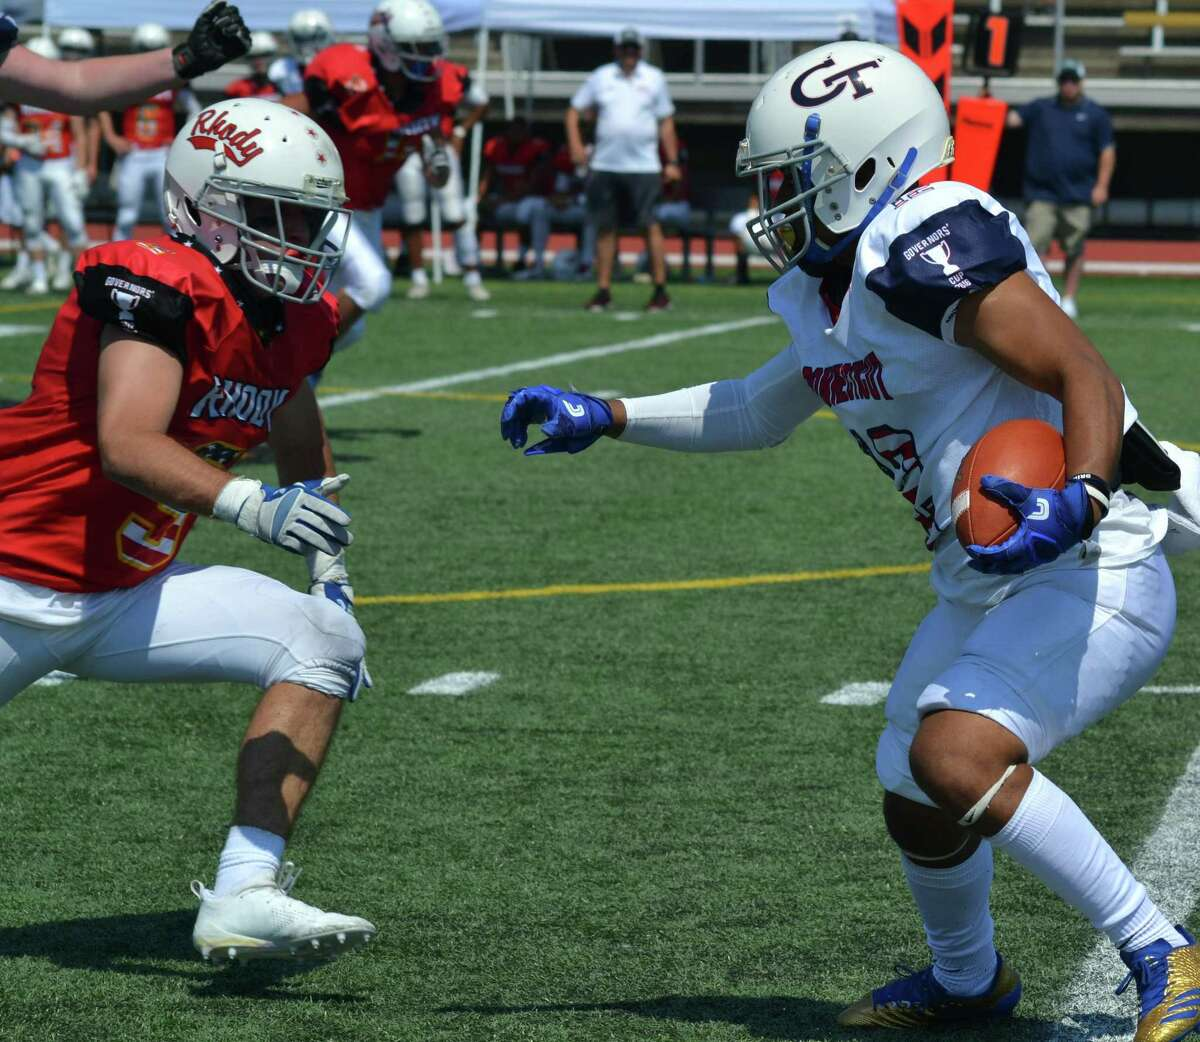 Connecticut's Chris Chance of West Haven looks to pick up extra yards against Rhode Island during Saturday's Governor's Cup in New Britain.